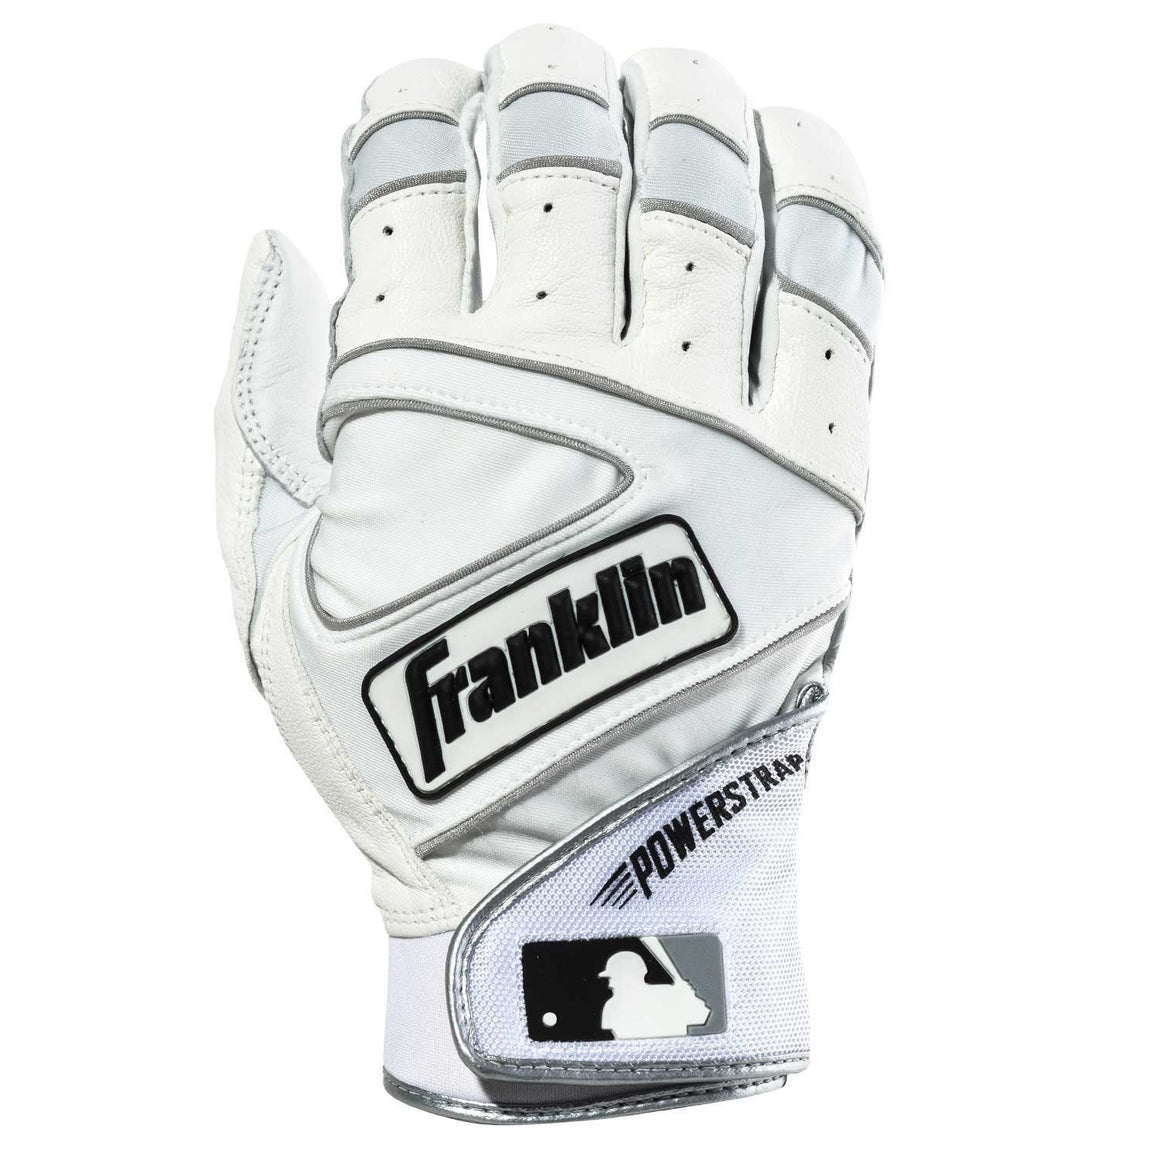 Franklin MLB Powerstrap Youth Batting Gloves, Pearl/White, Size Medium